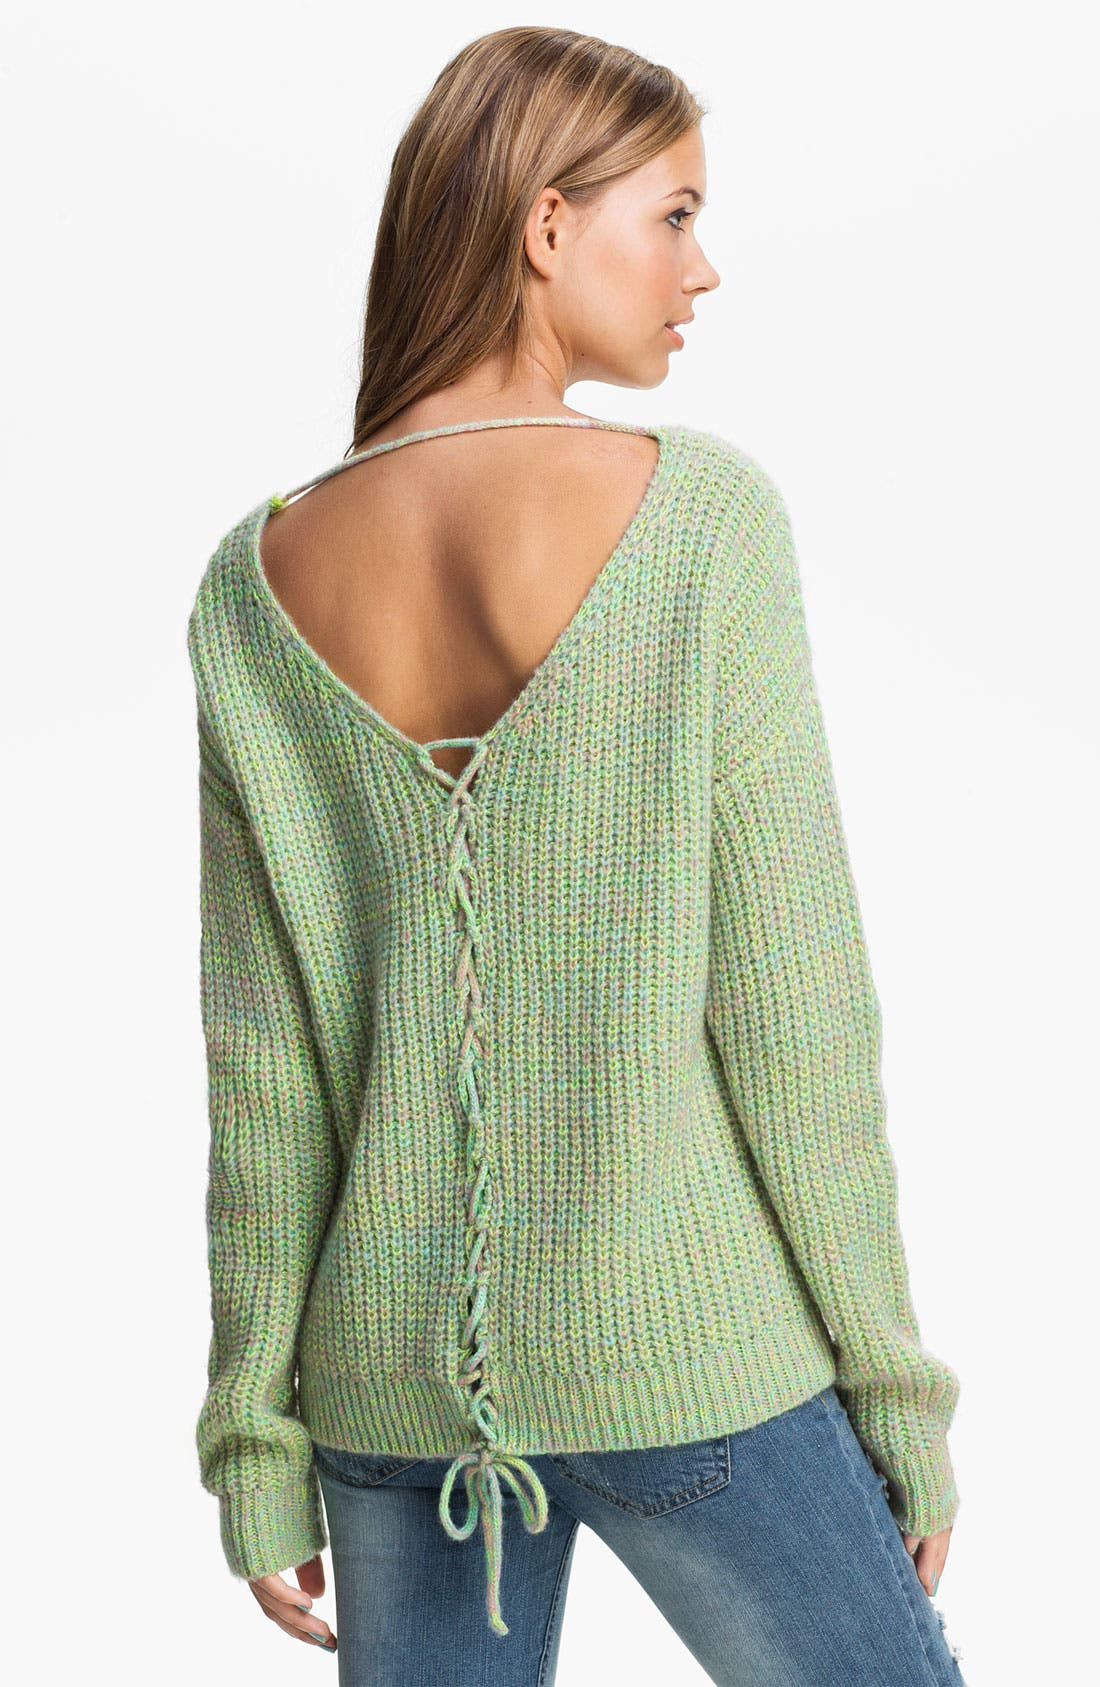 Alternate Image 1 Selected - Love by Design Lace Back Sweater (Juniors)